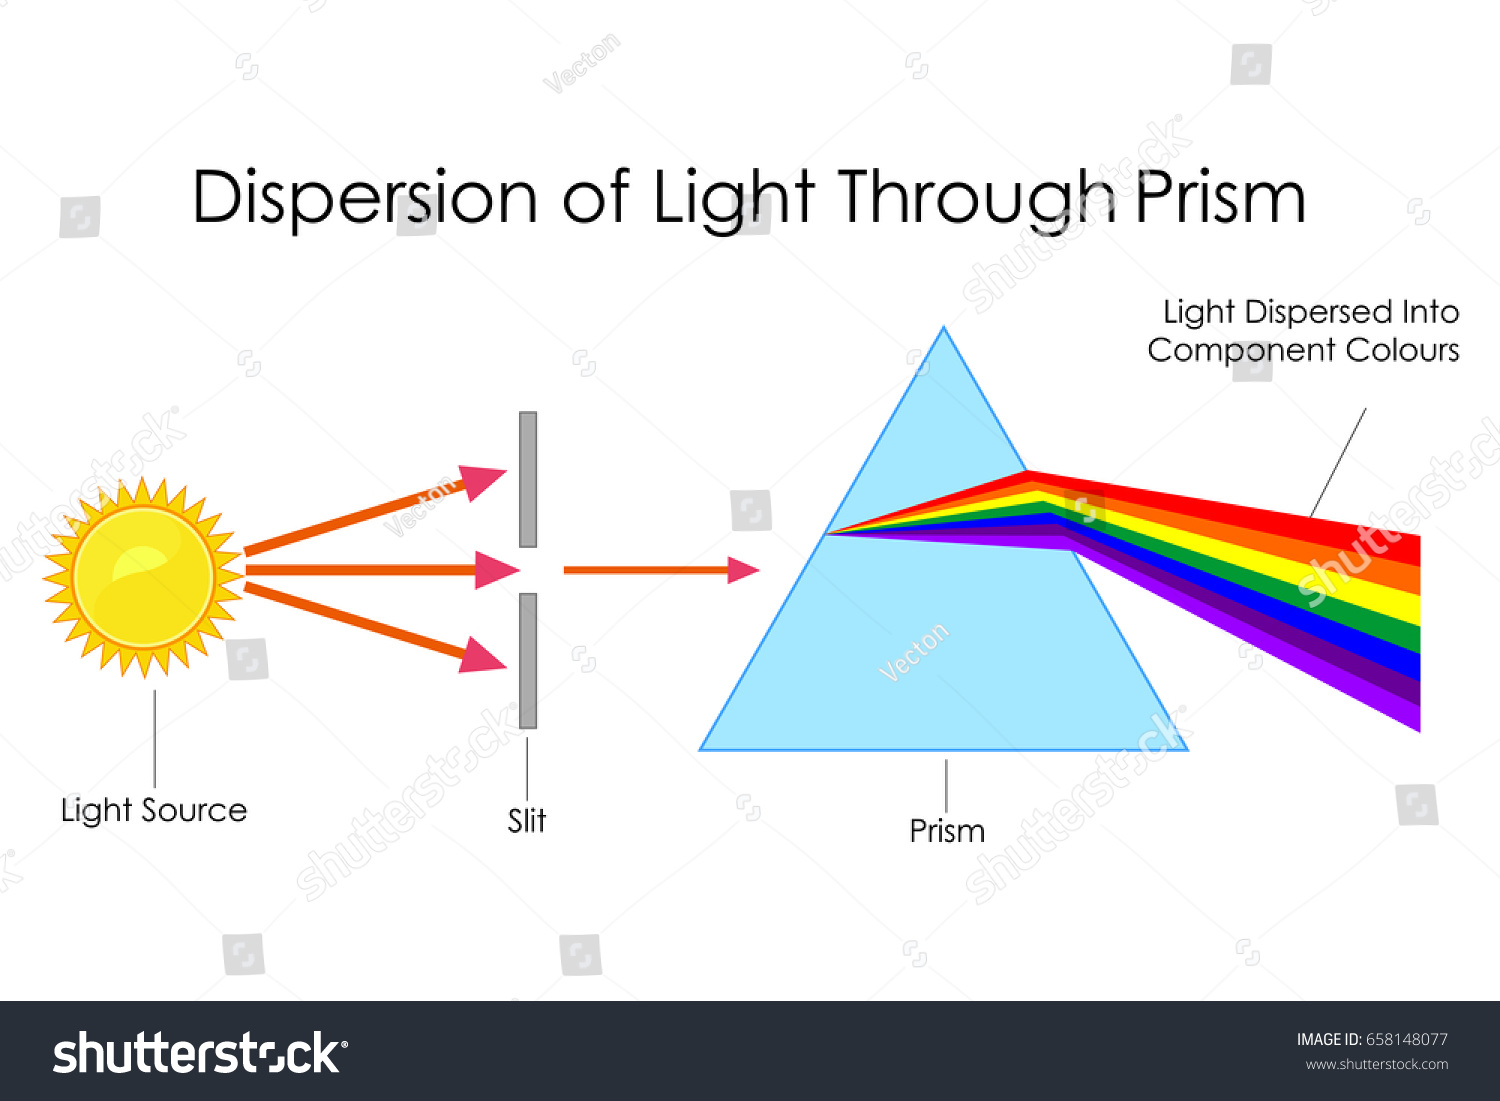 What is dispersion? 18